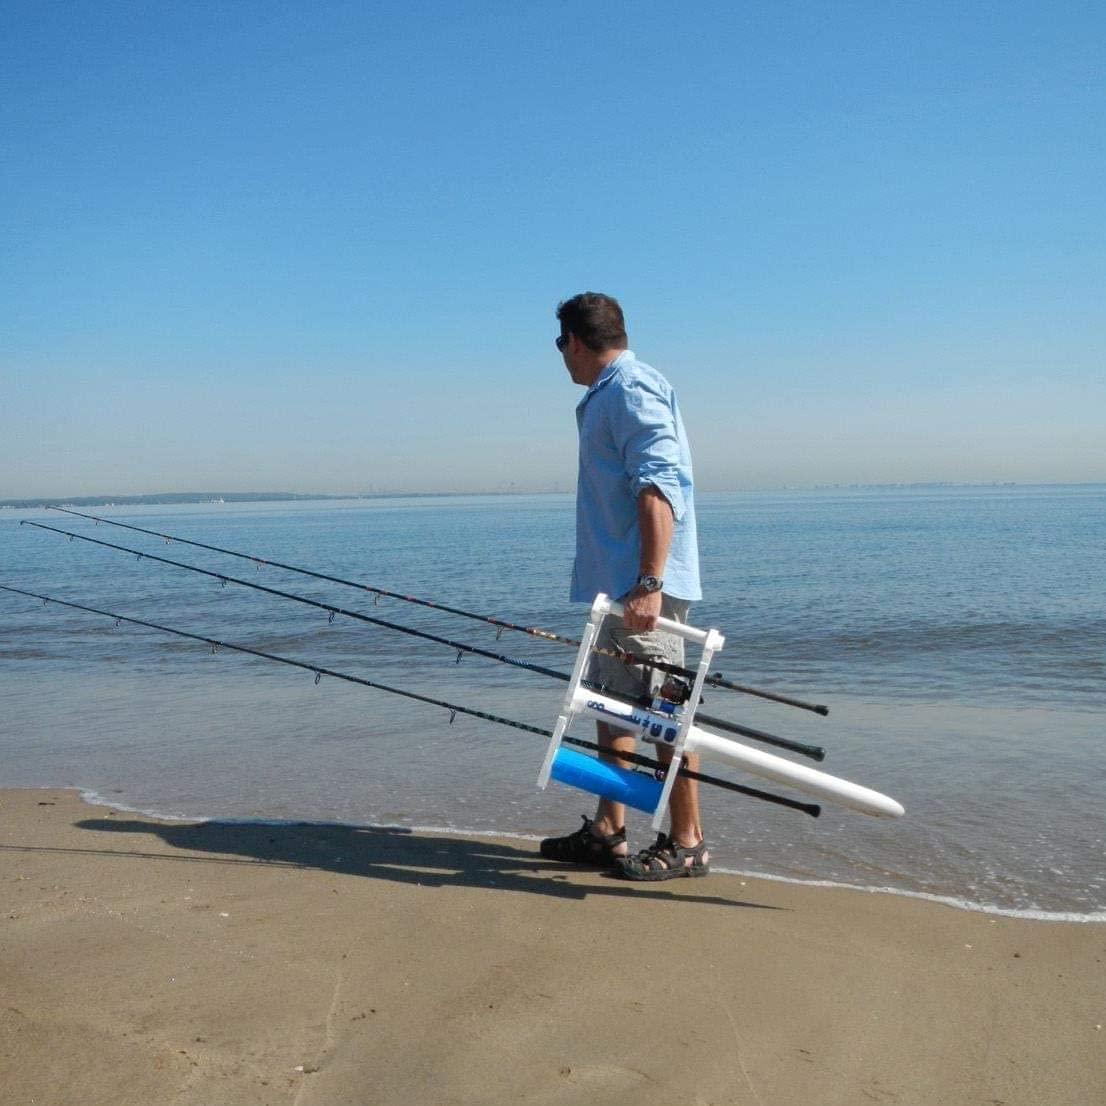 Spikengo Fishing Pole Carrier